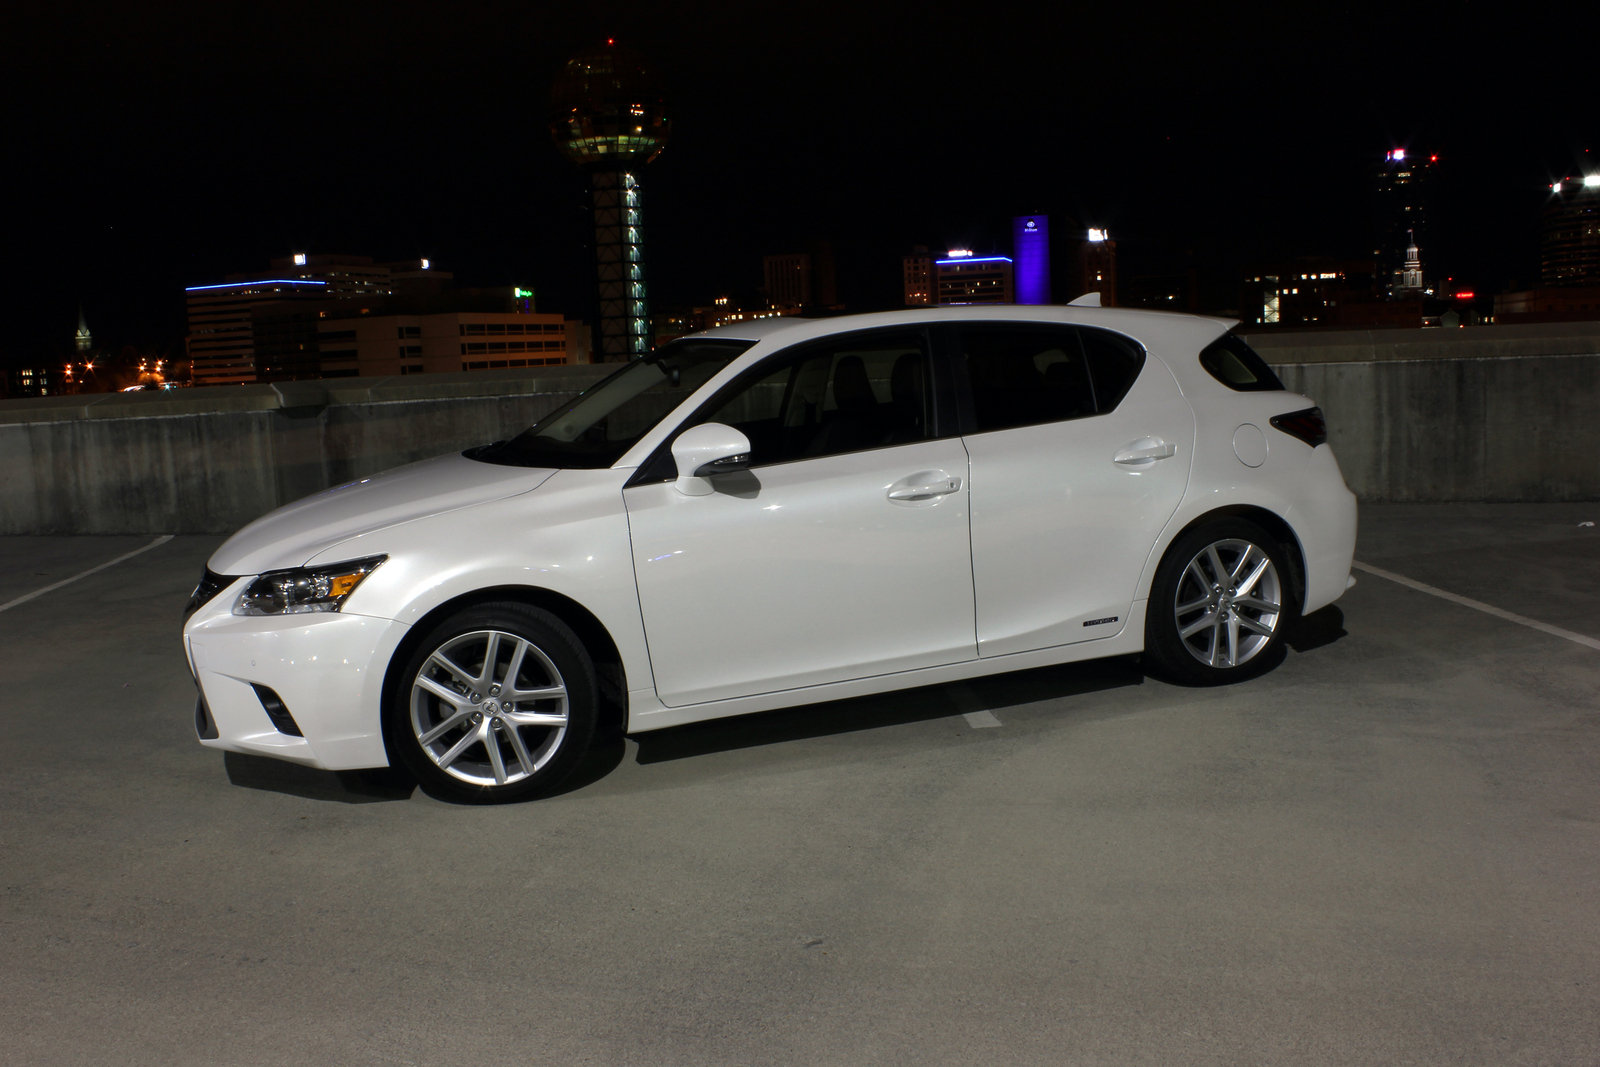 2015 lexus ct 200h driven picture 615164 car review top speed. Black Bedroom Furniture Sets. Home Design Ideas